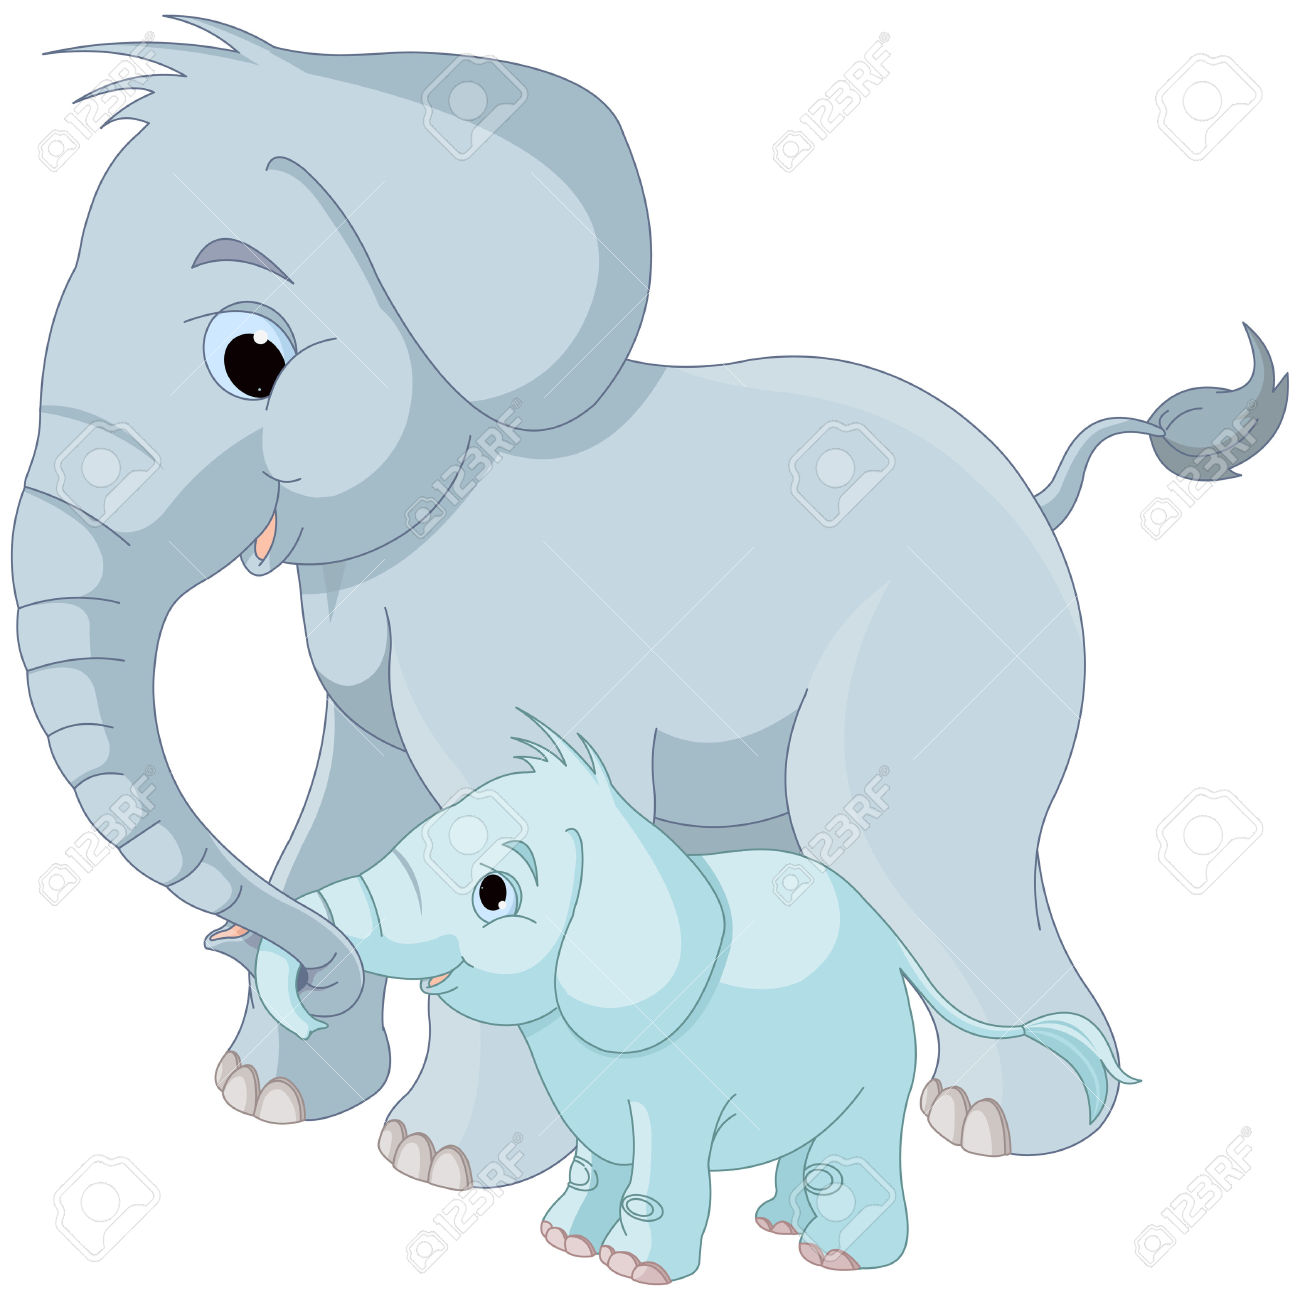 Elephant calf clipart 20 free Cliparts | Download images ...